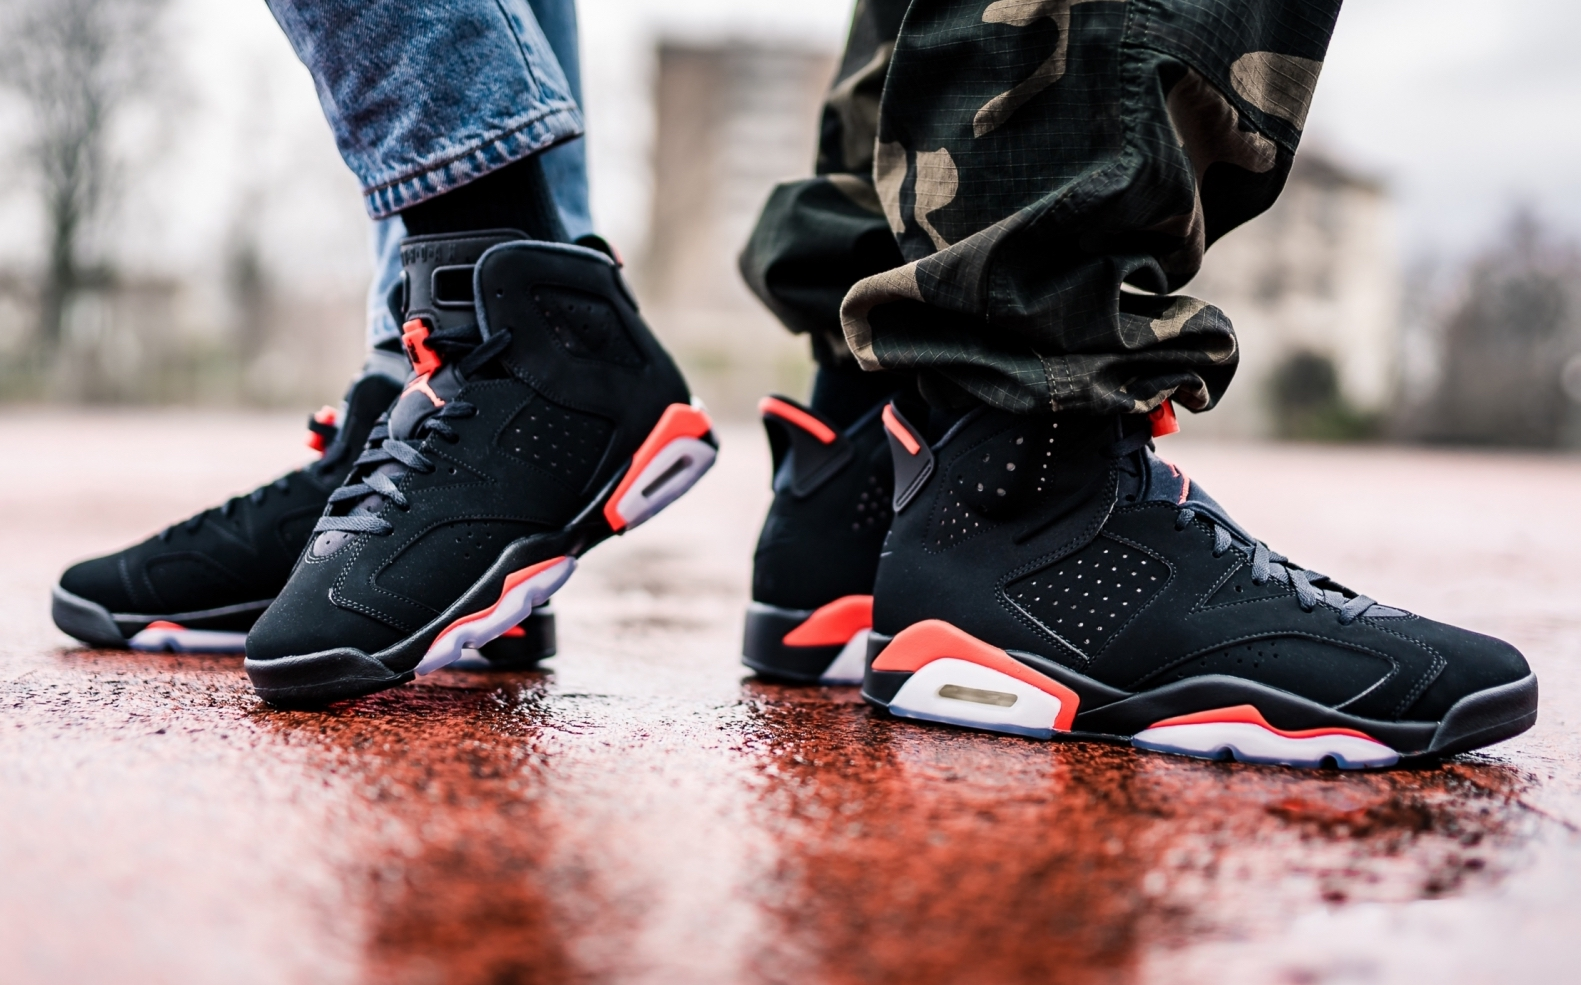 Air Jordan 6 Black Infrared OG 2019 Dropping In GS Sizes